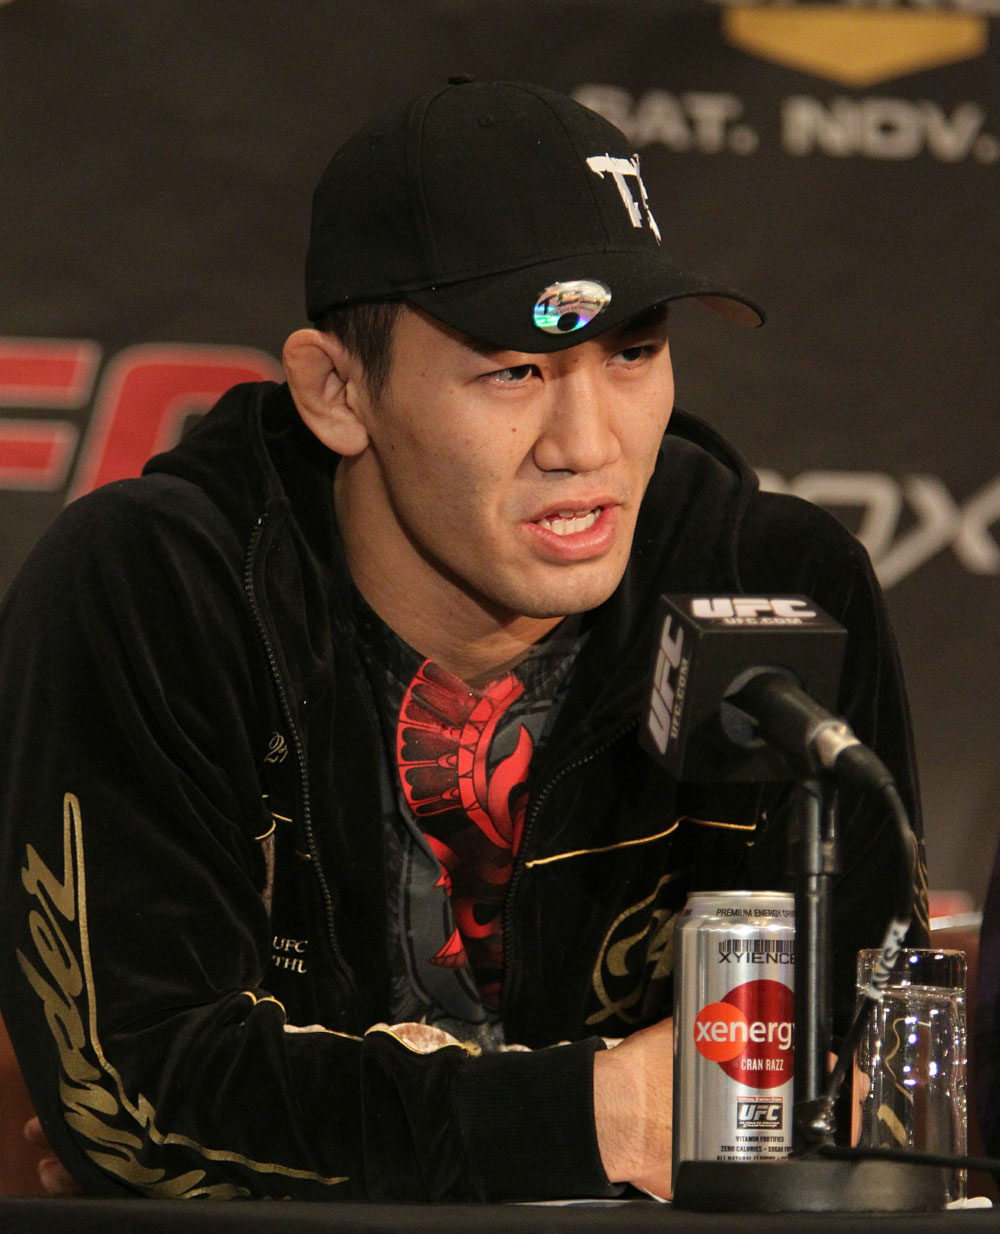 Yushin Okami, of Japan, at the UFC 122 pre-fight press conference at the Hilton Hotel on November 11,  2010 in Dusseldorf, Germany.  (Photo by Josh Hedges/Zuffa LLC/Zuffa LLC via Getty Images)